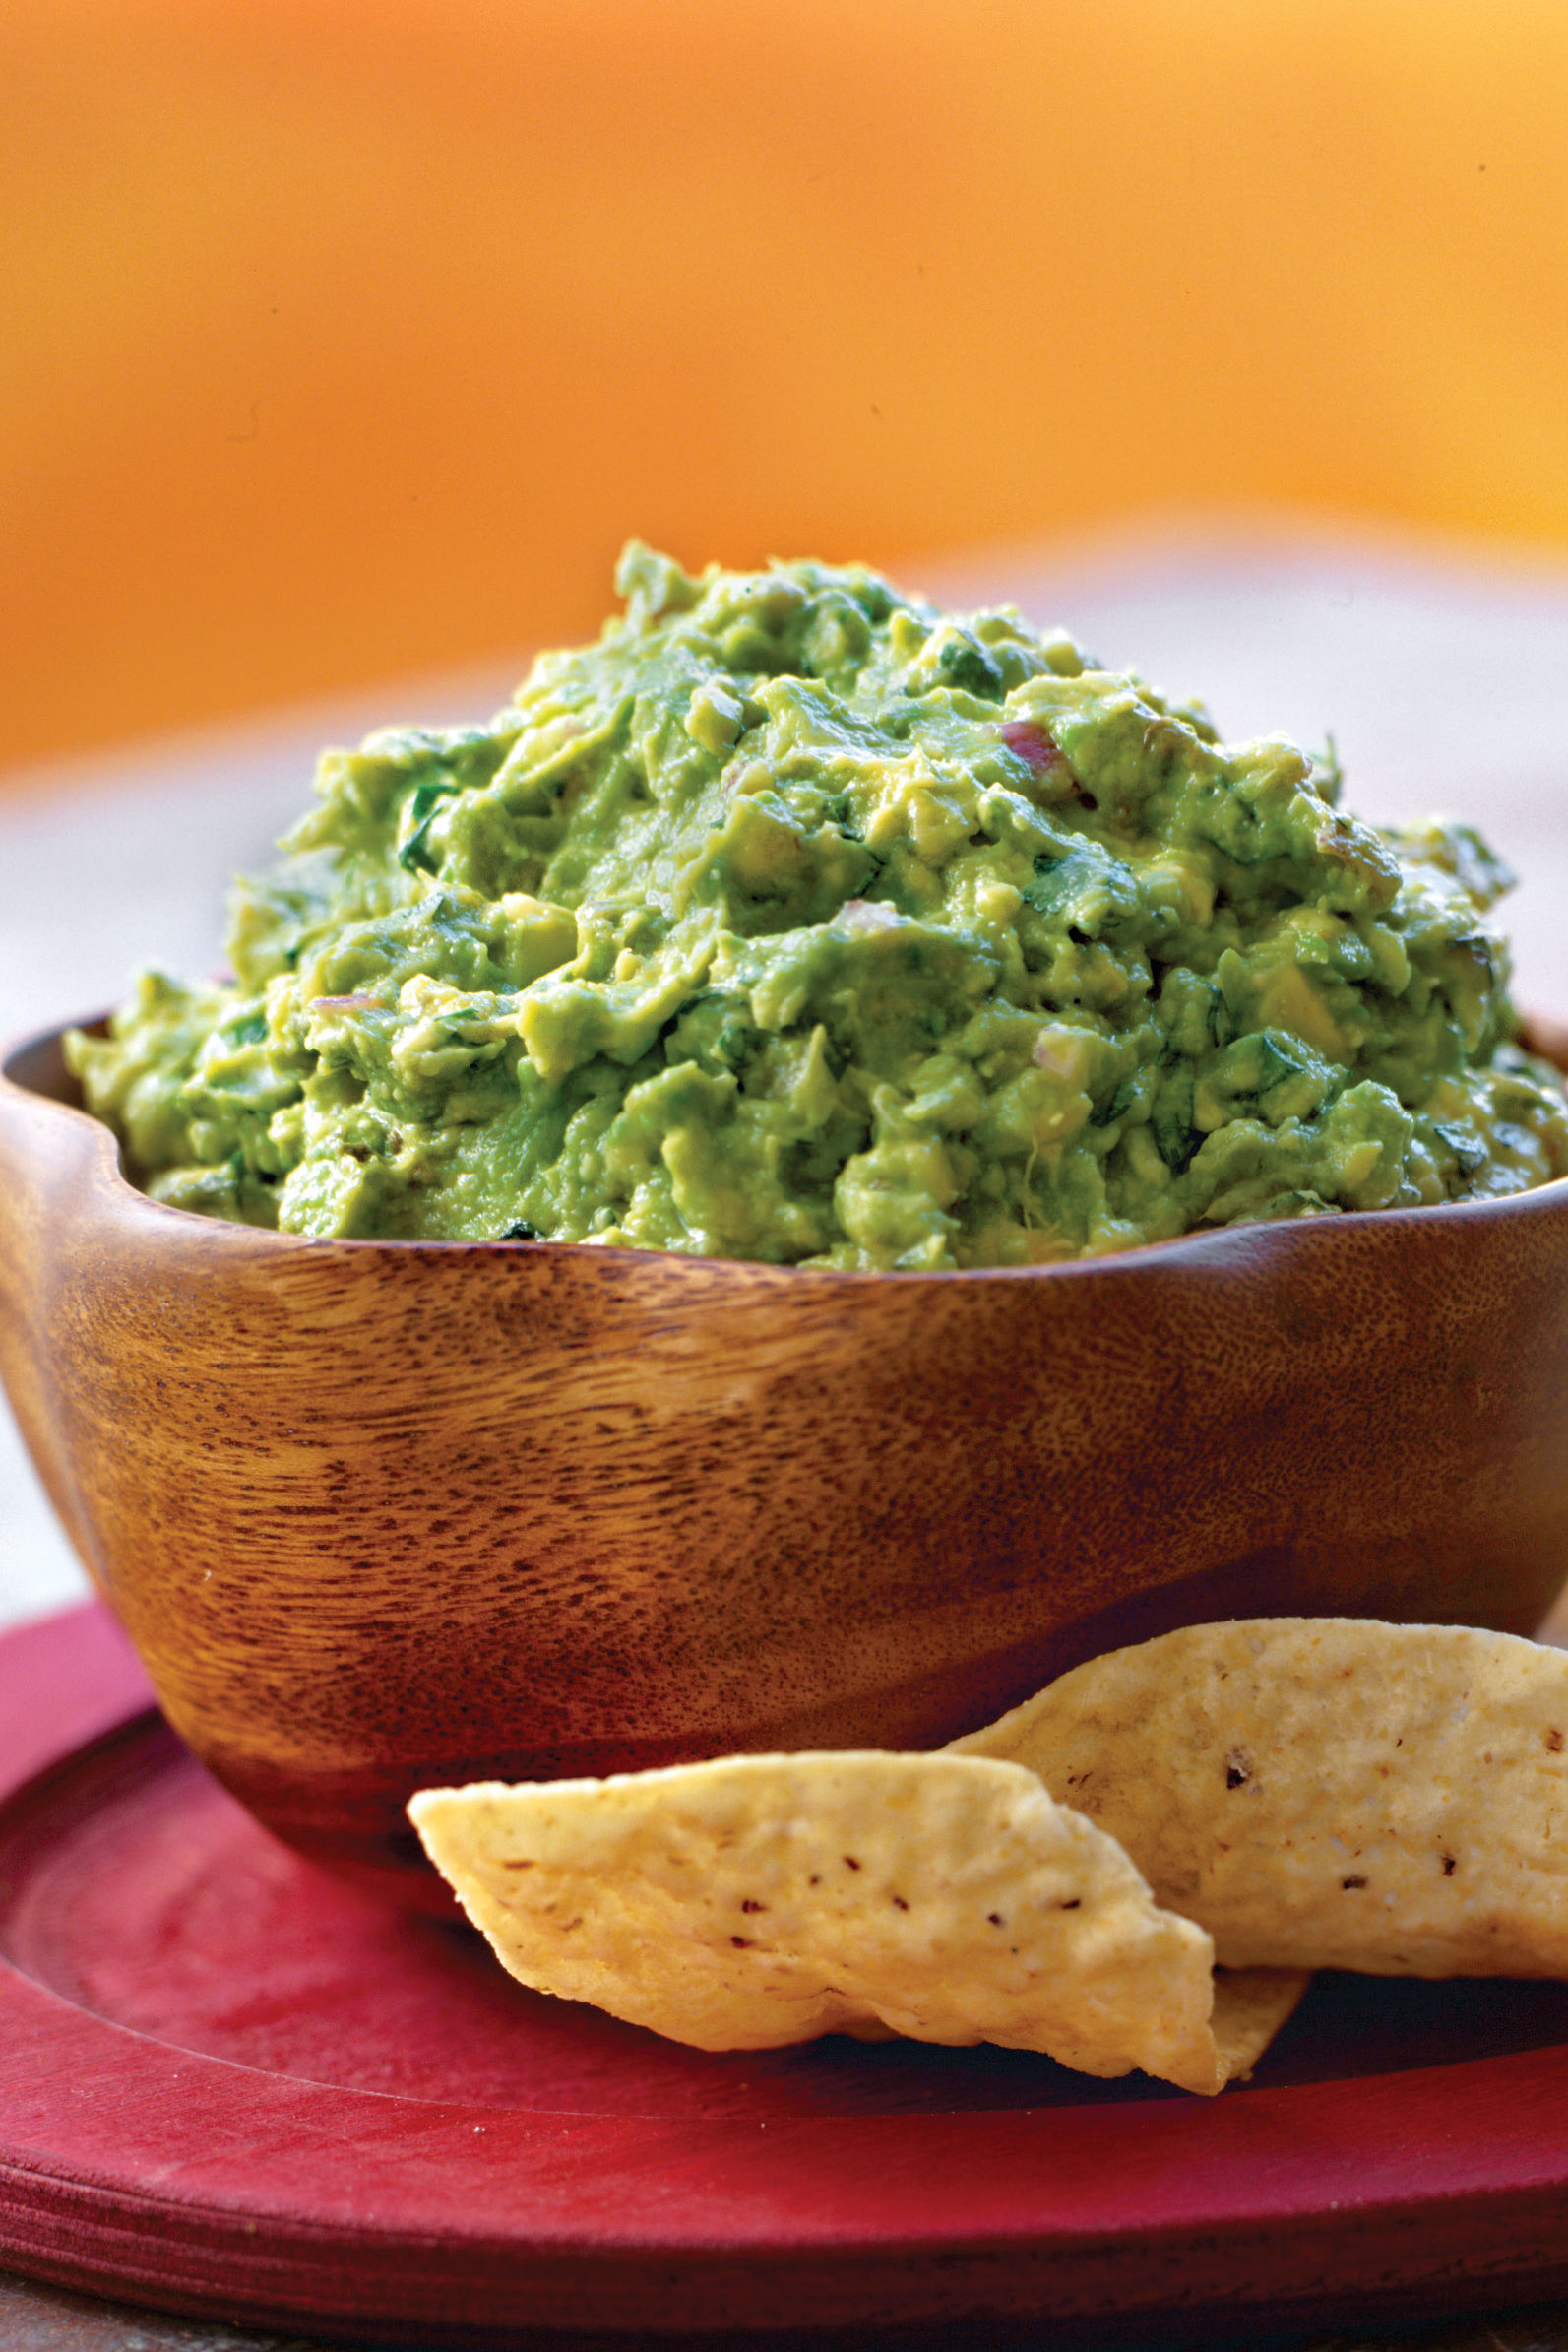 Our Favorite Guacamole Recipe (It's Easy!)